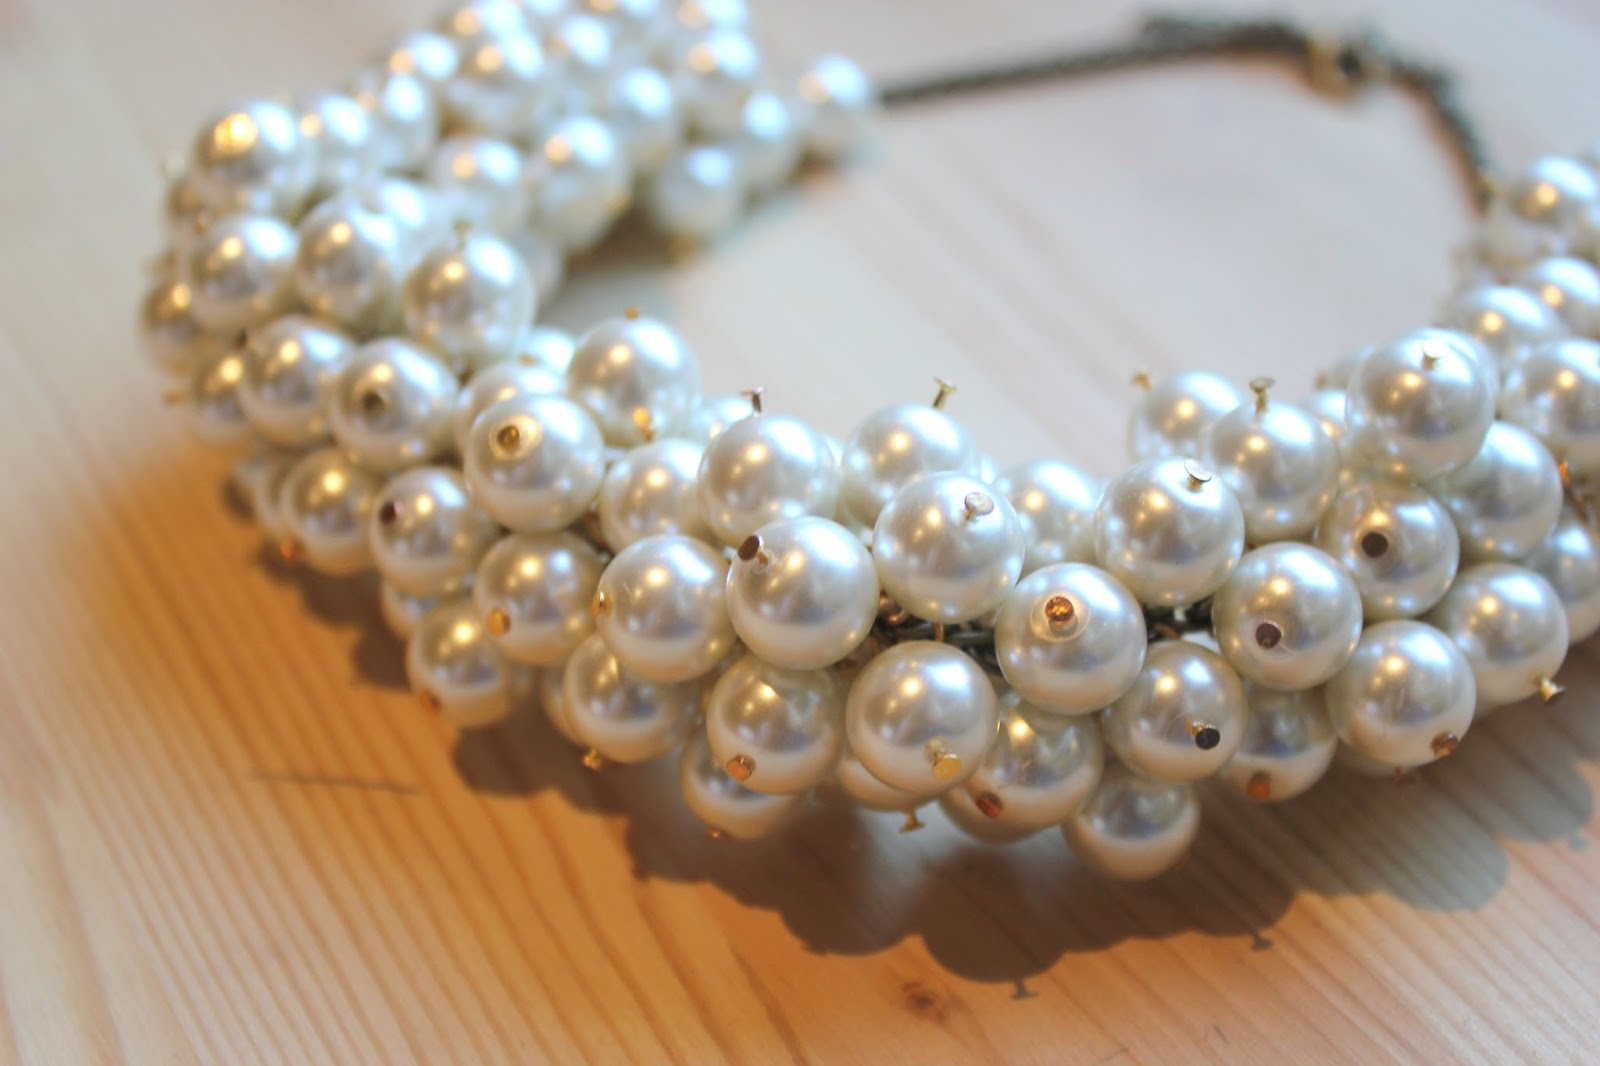 DIY Collar de perlas inspiración Chanel / DIY Pearl Necklace